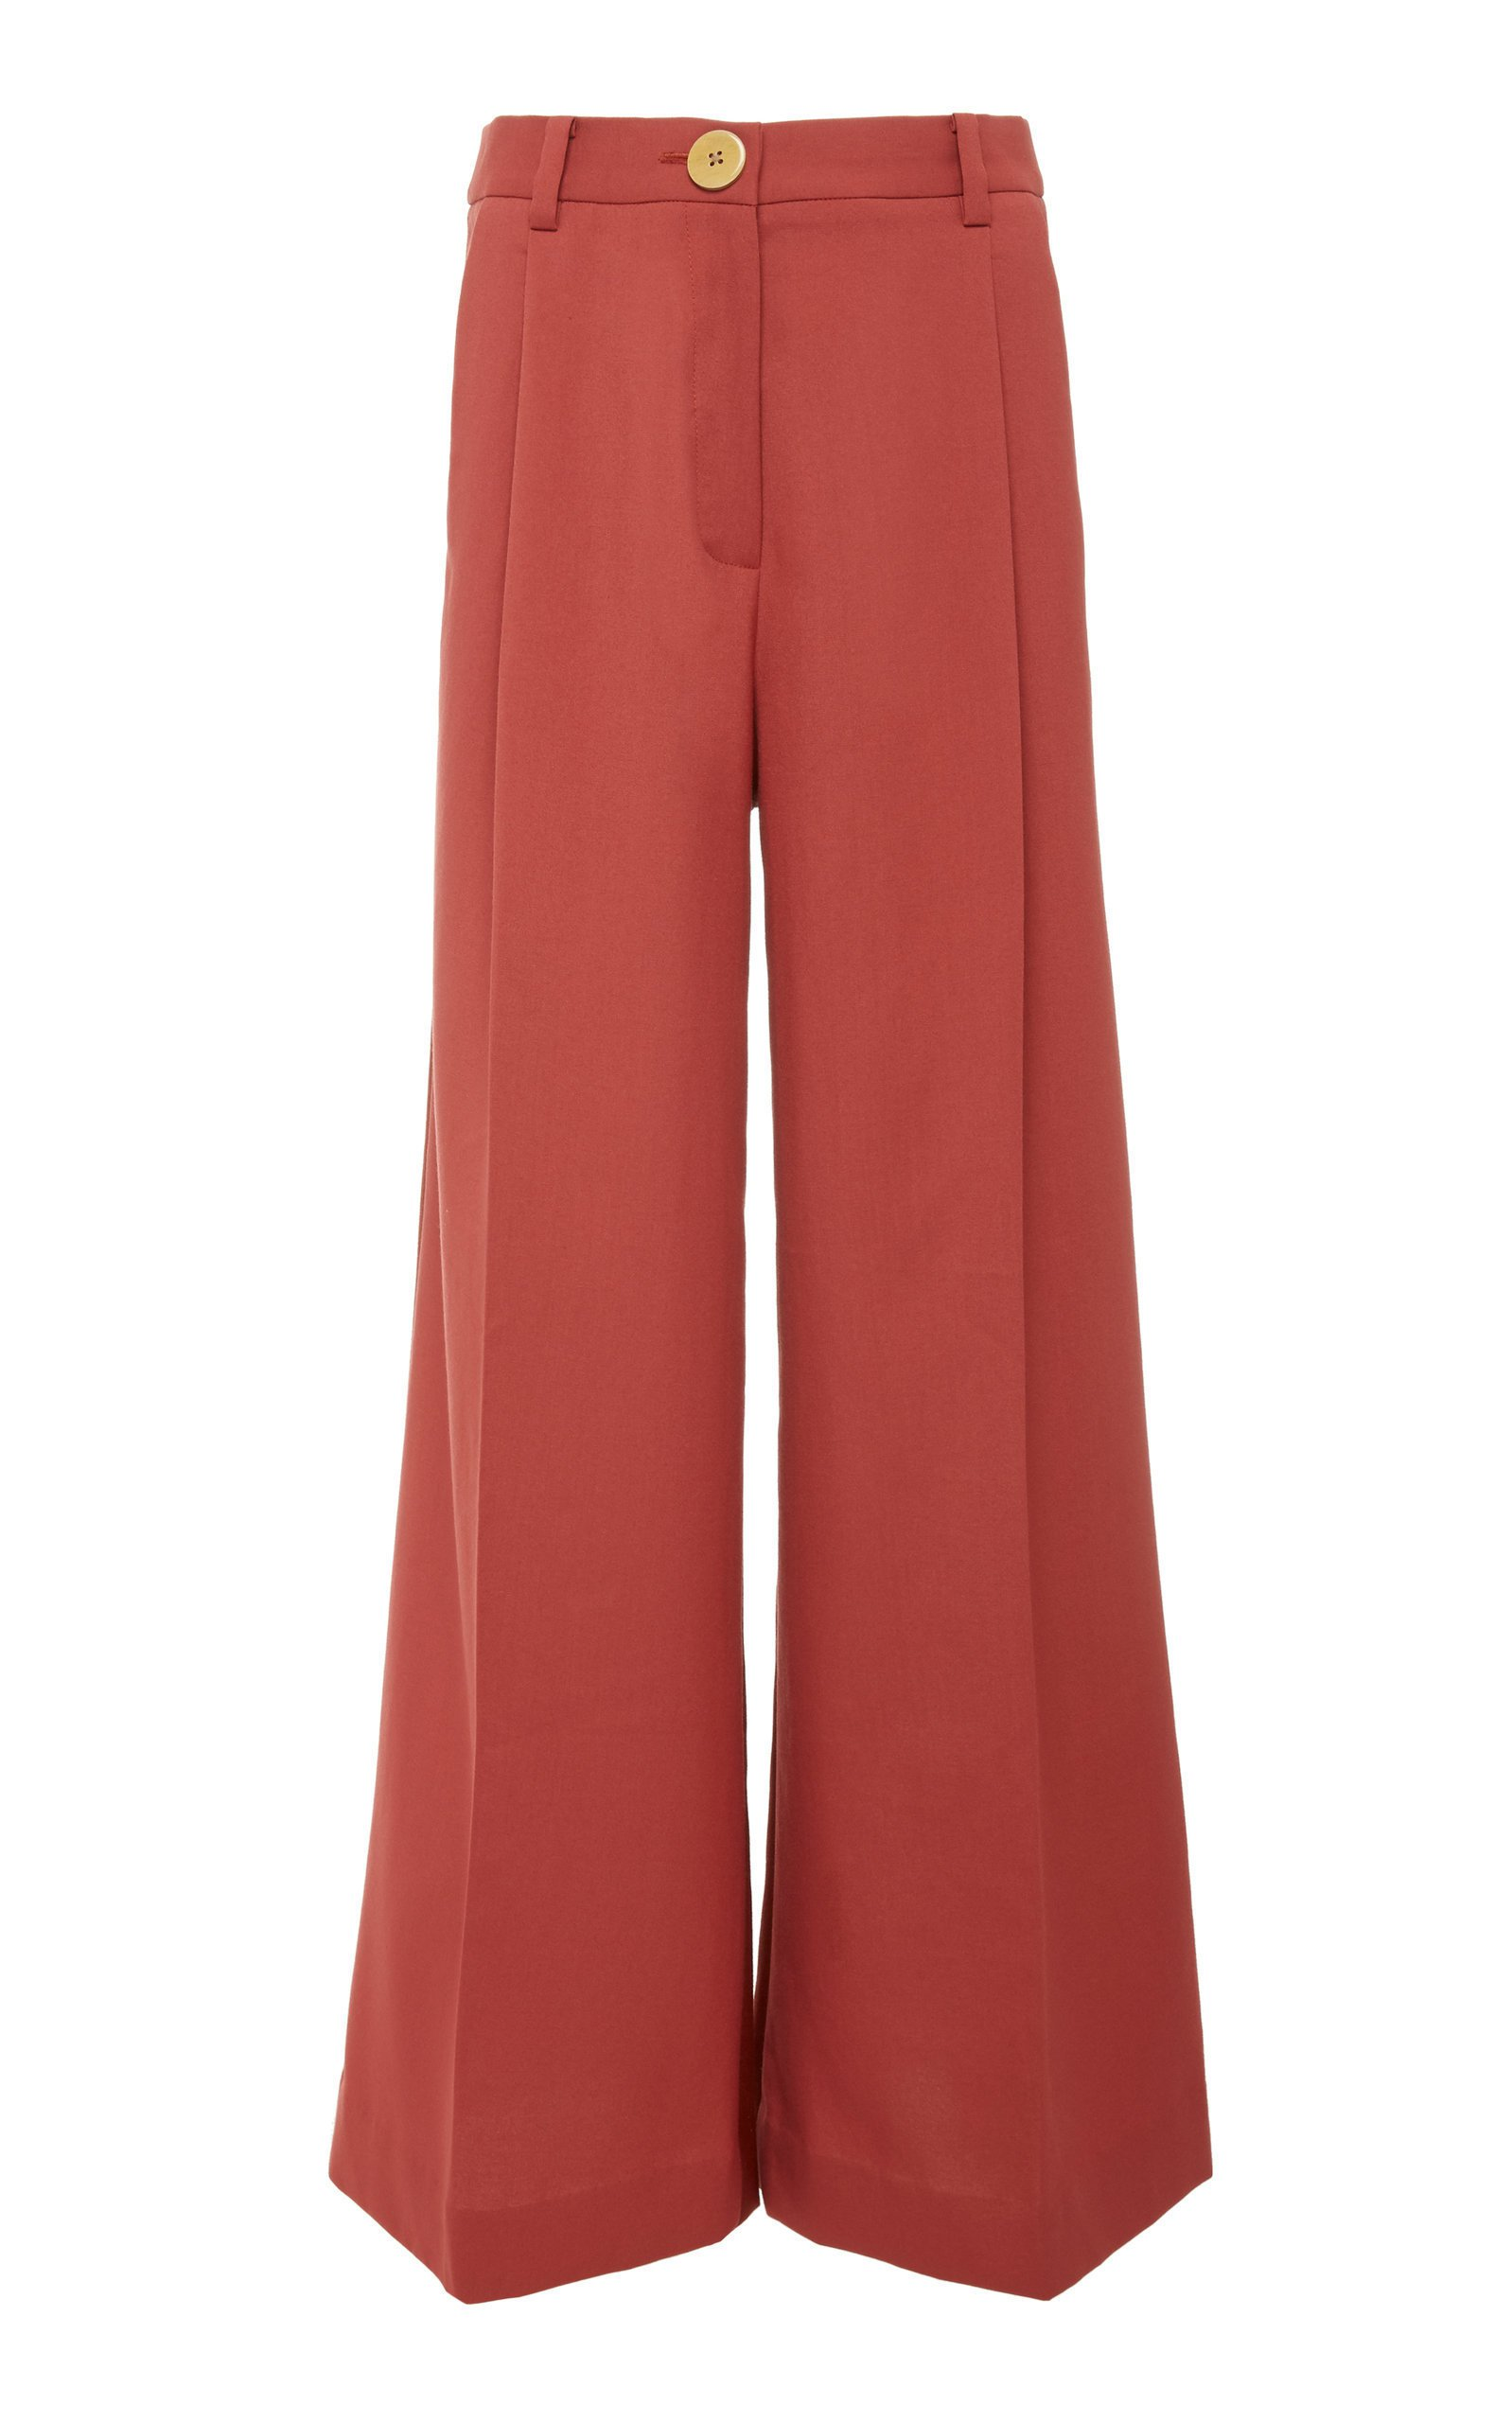 Bouguessa Two-Tone High Waisted Wide Leg Pants Size: L